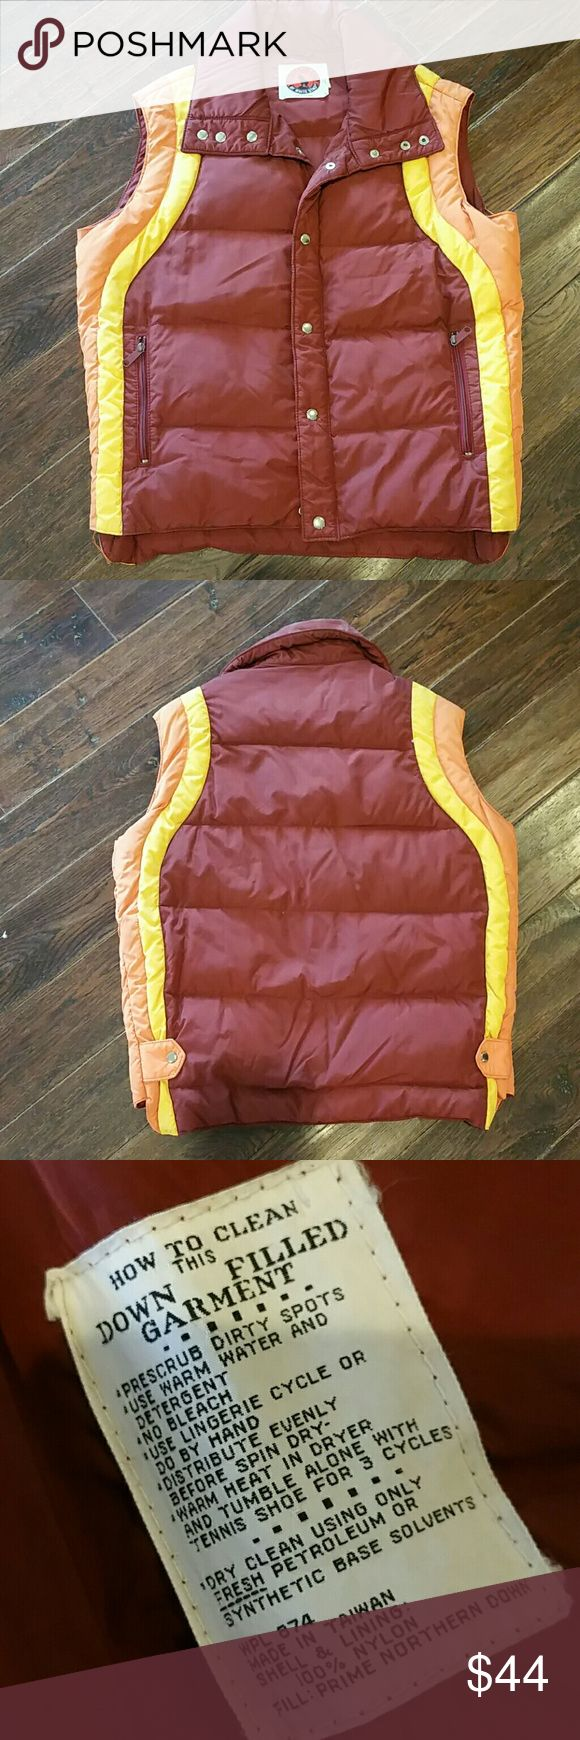 Vintage puffer ski vest / jacket.  XL A nice vintage down filled ski vest jacket in a rust brown and orange and yellow guessing 1970s snap and zippered closure 2 zip pockets on the outside and 2 pockets on the inside she'll and lining nylon and fill is prime northern down 2 tiny holes see photo. Mountain goat Jackets & Coats Puffers